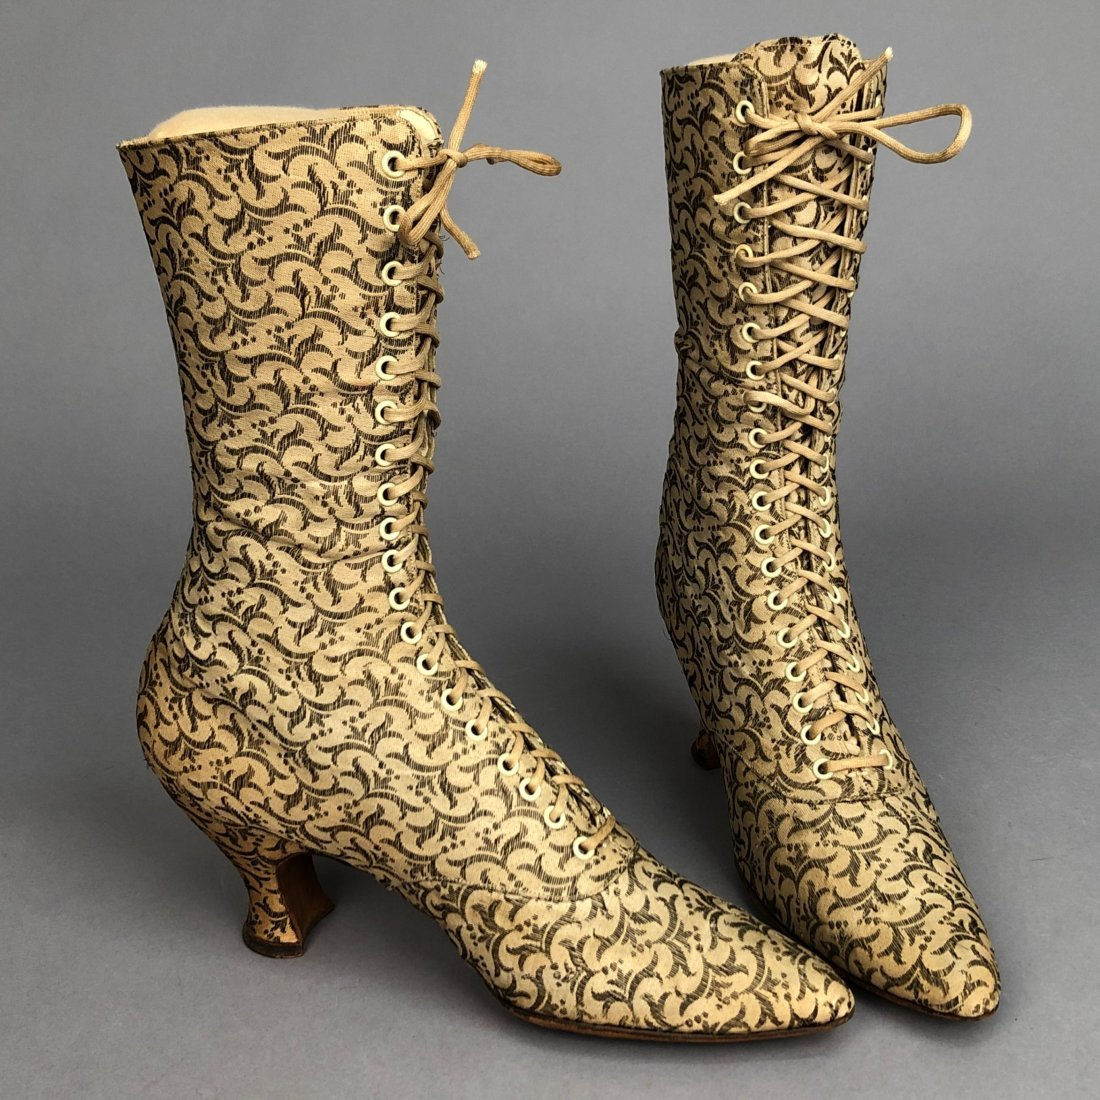 METALLIC BROCADE LACE-UP BOOTS, c. 1895 - 2